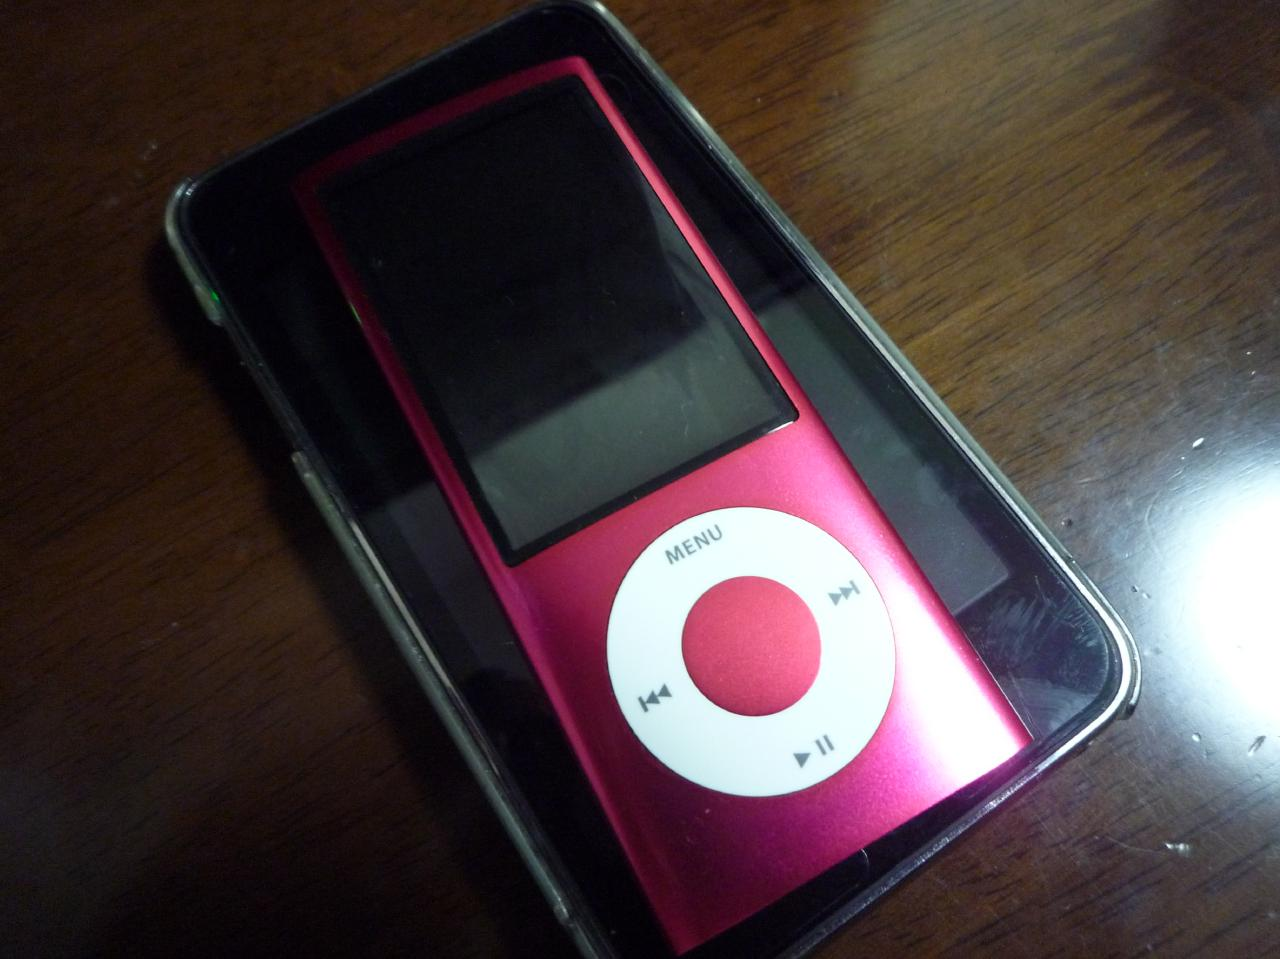 Shop for ipod nano 8th generation online at Target Free shipping amp returns and save 5 every day with your Target REDcard